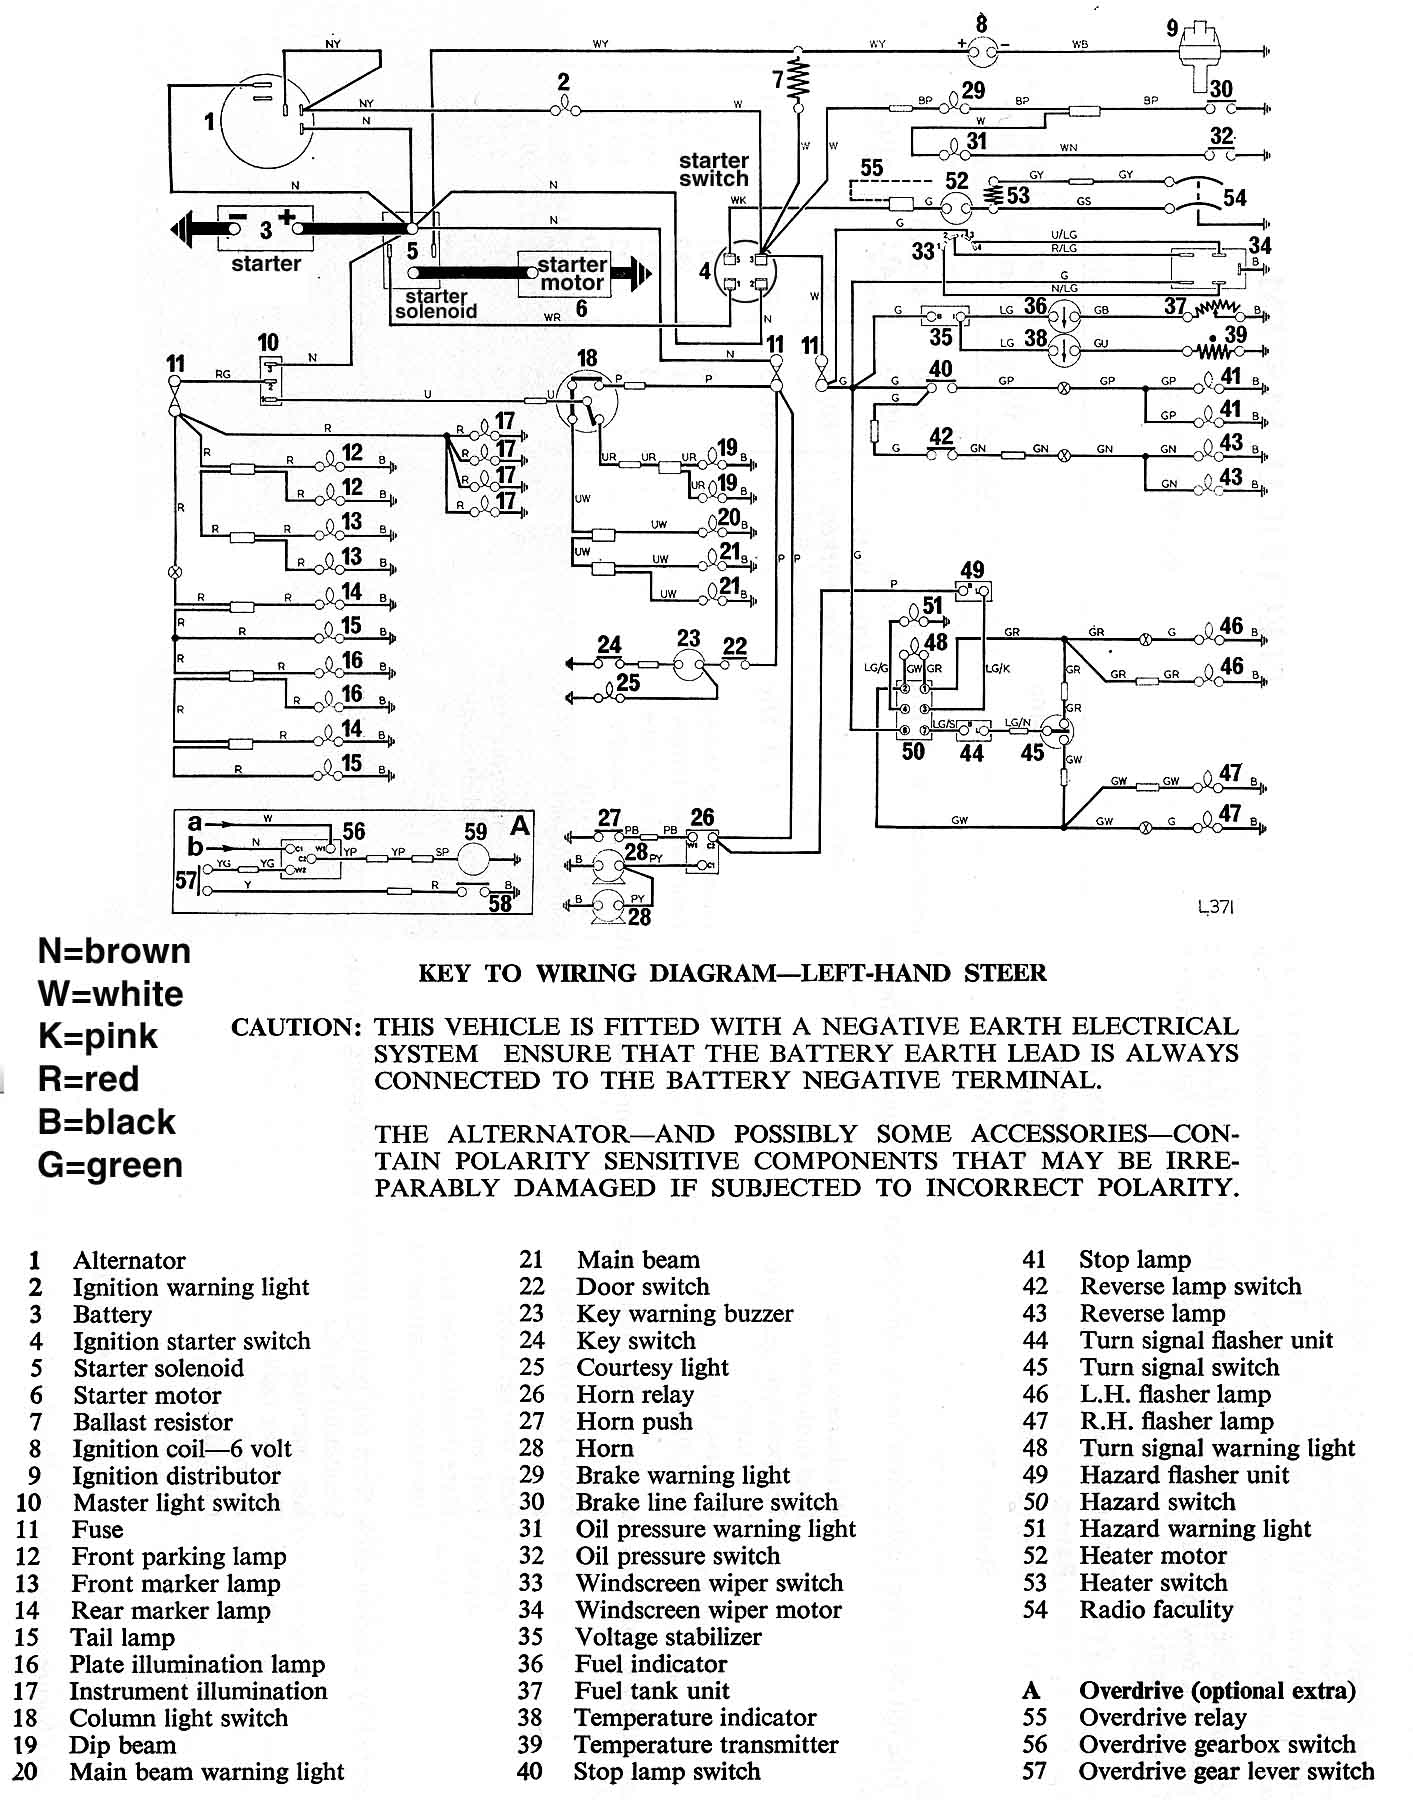 Read on 2014 triumph wiring diagram